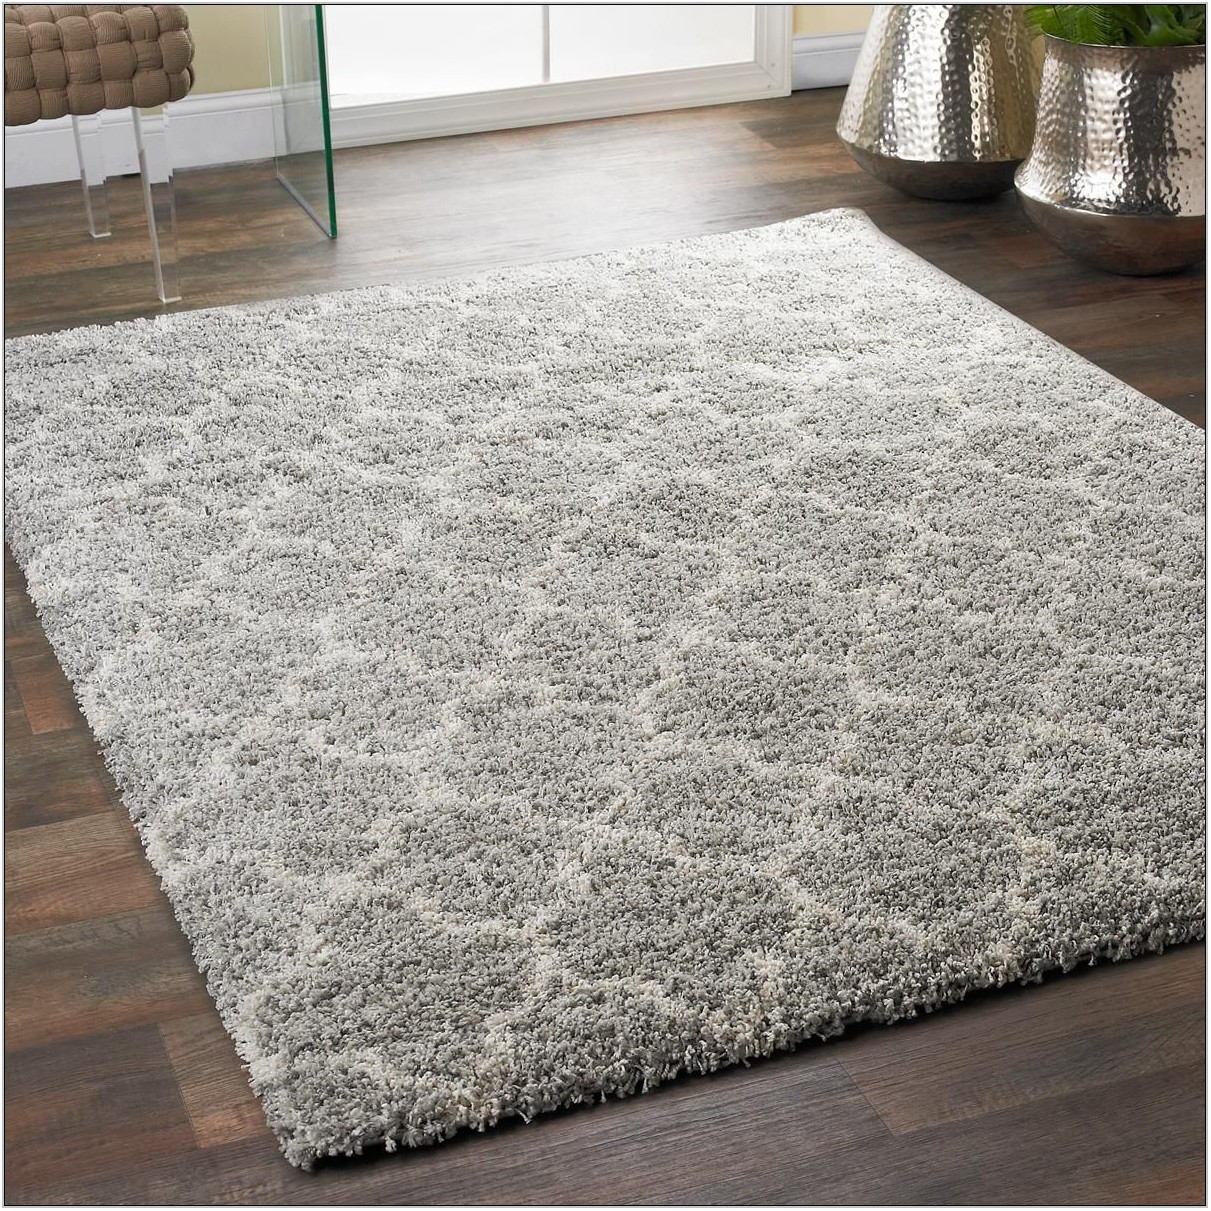 Plush Living Room Rugs